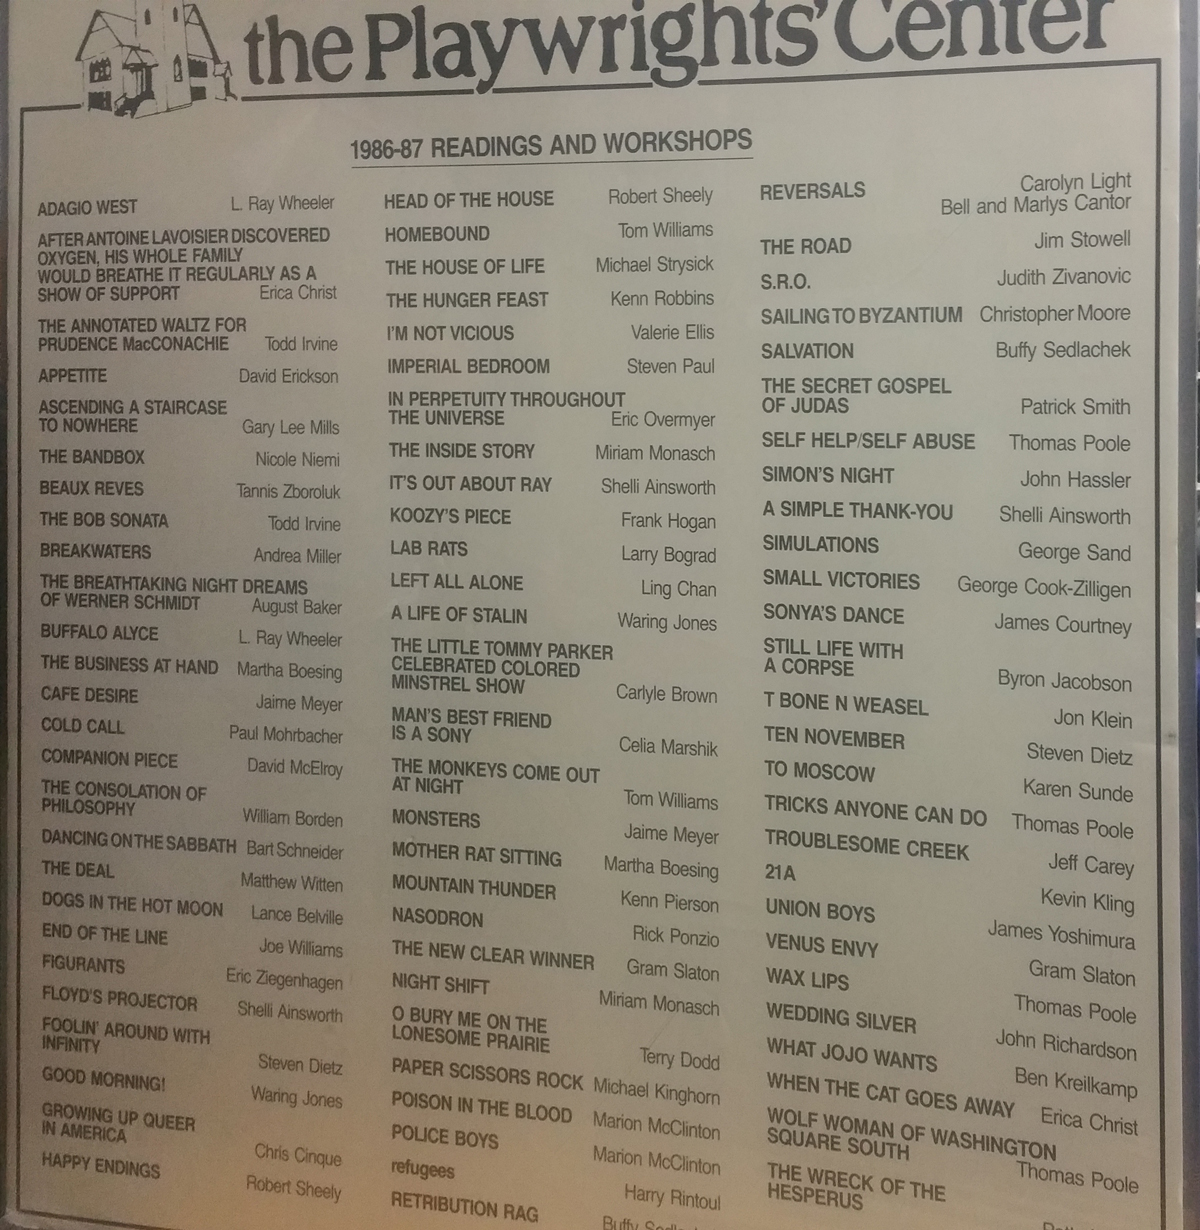 Poster listing the 1986-87 readings and workshops at the Playwrights' Center